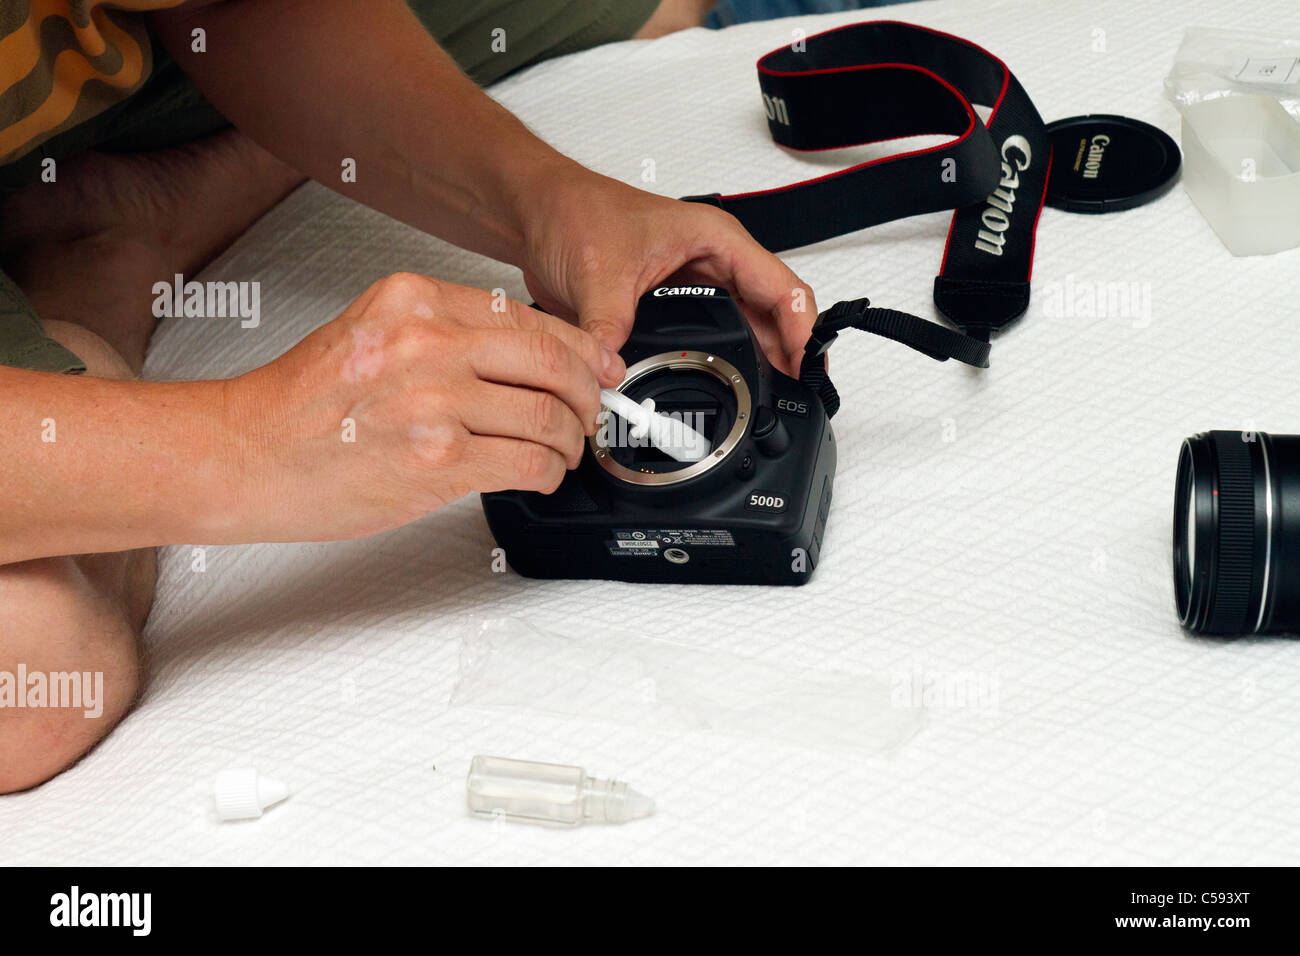 Cleaning the sensor of a Canon DSLR camera. - Stock Image